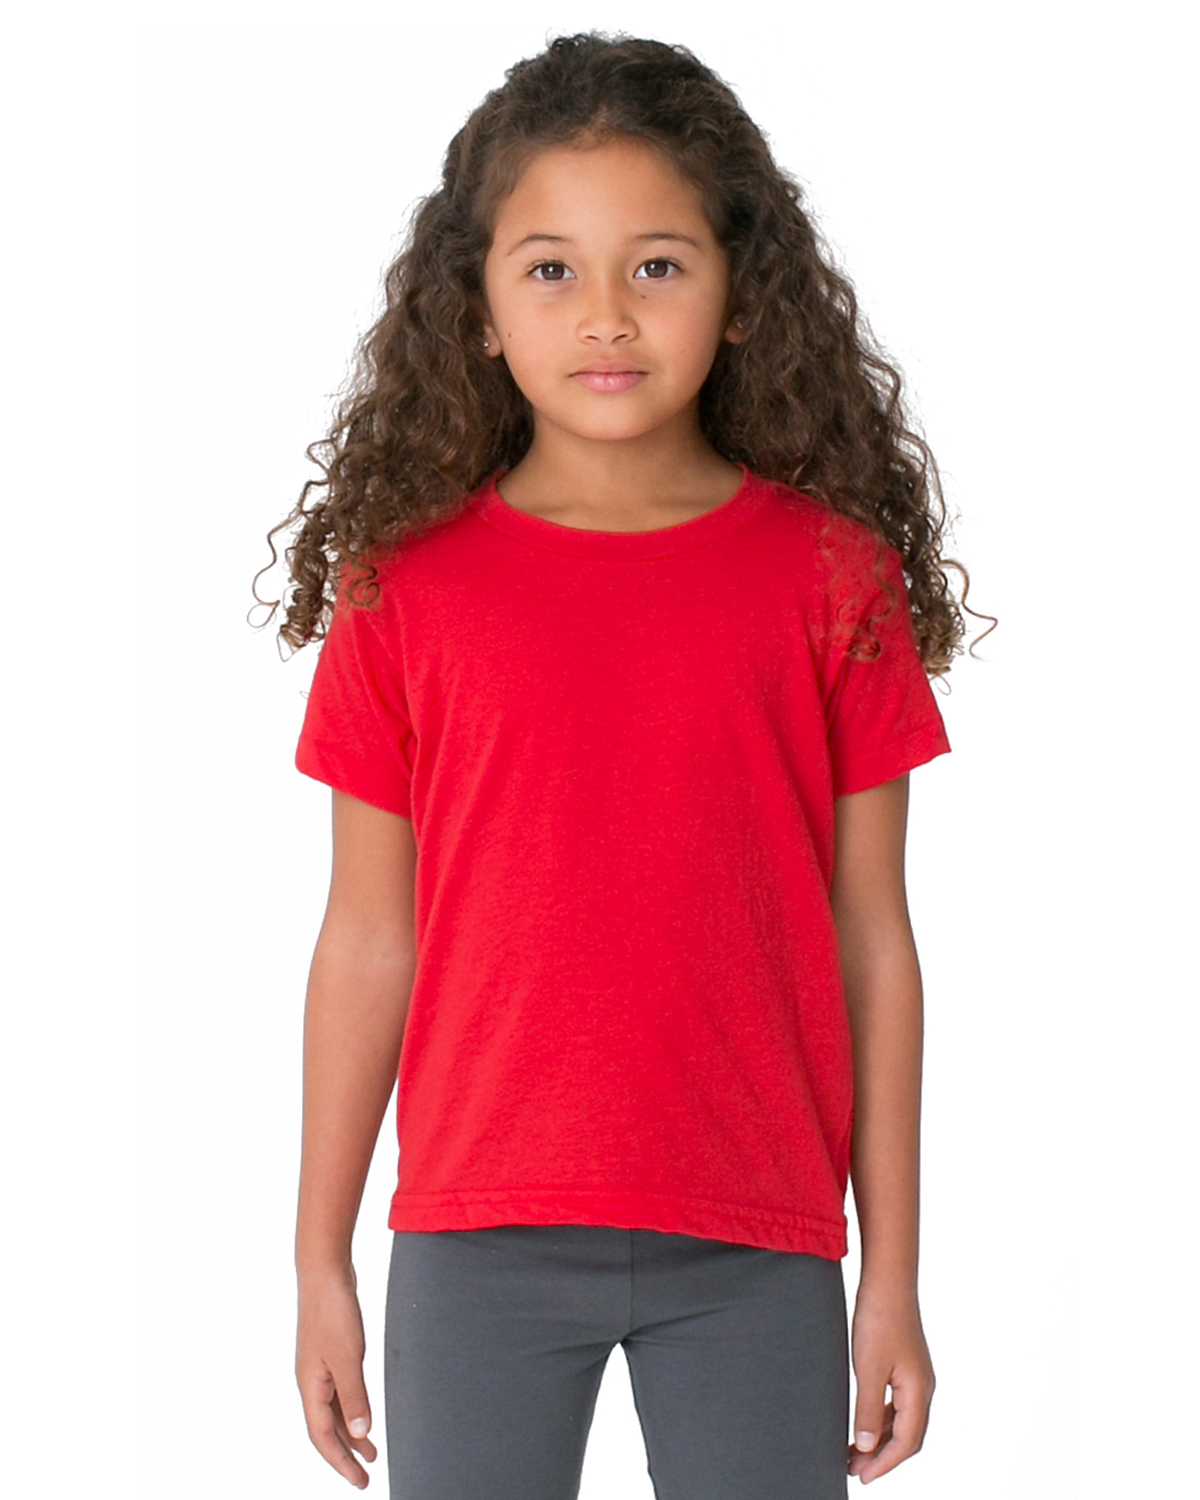 American Apparel Toddlers Poly-Cotton Short-Sleeve Crewneck